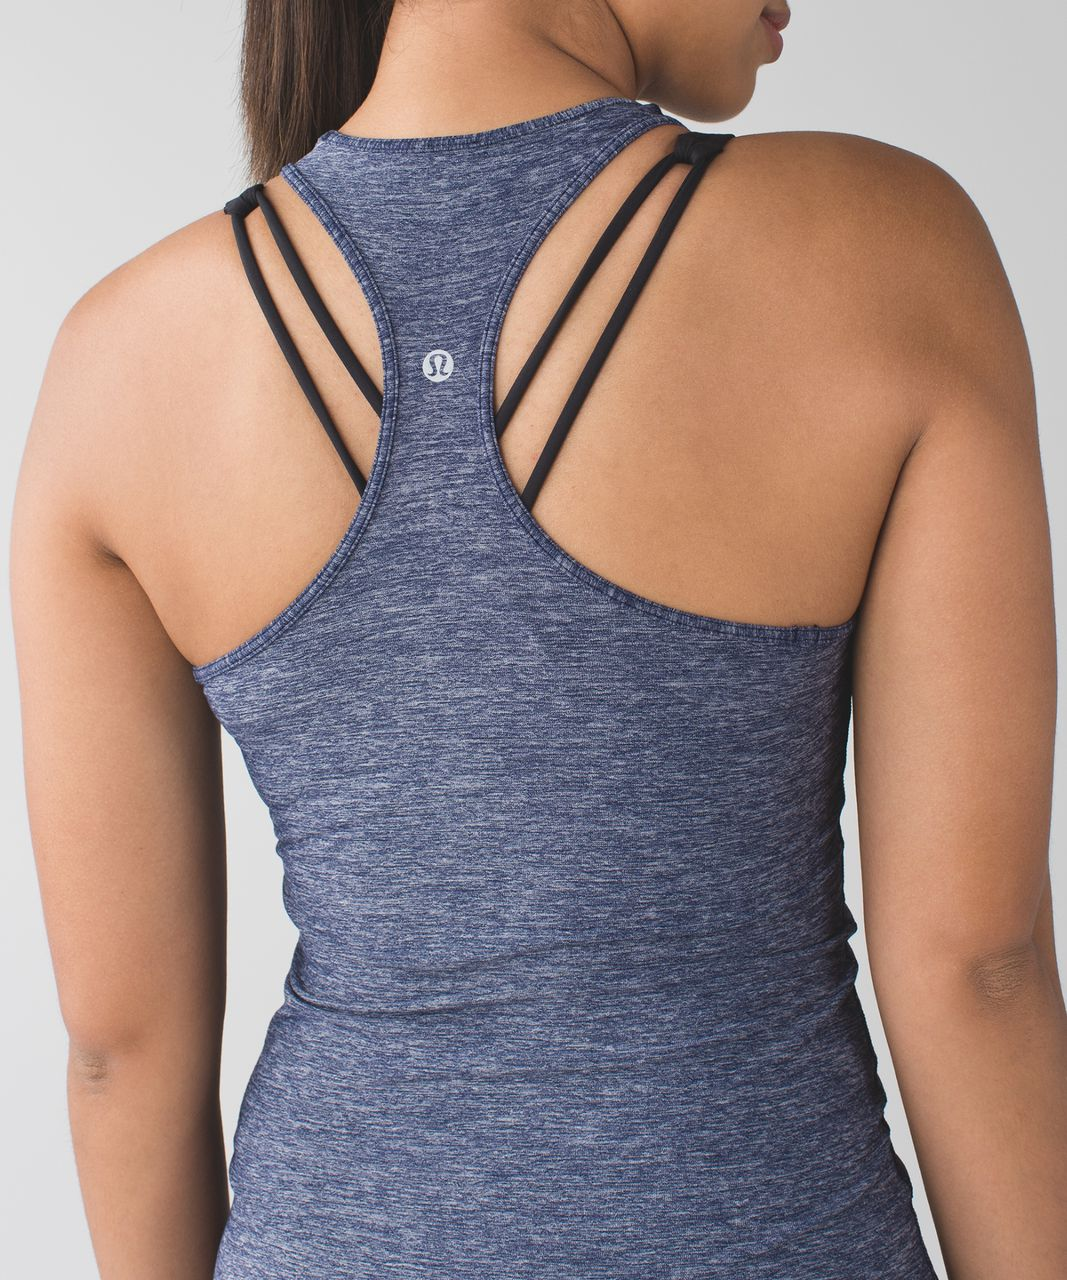 Lululemon Cool Racerback - Heathered Deep Navy (First Release)